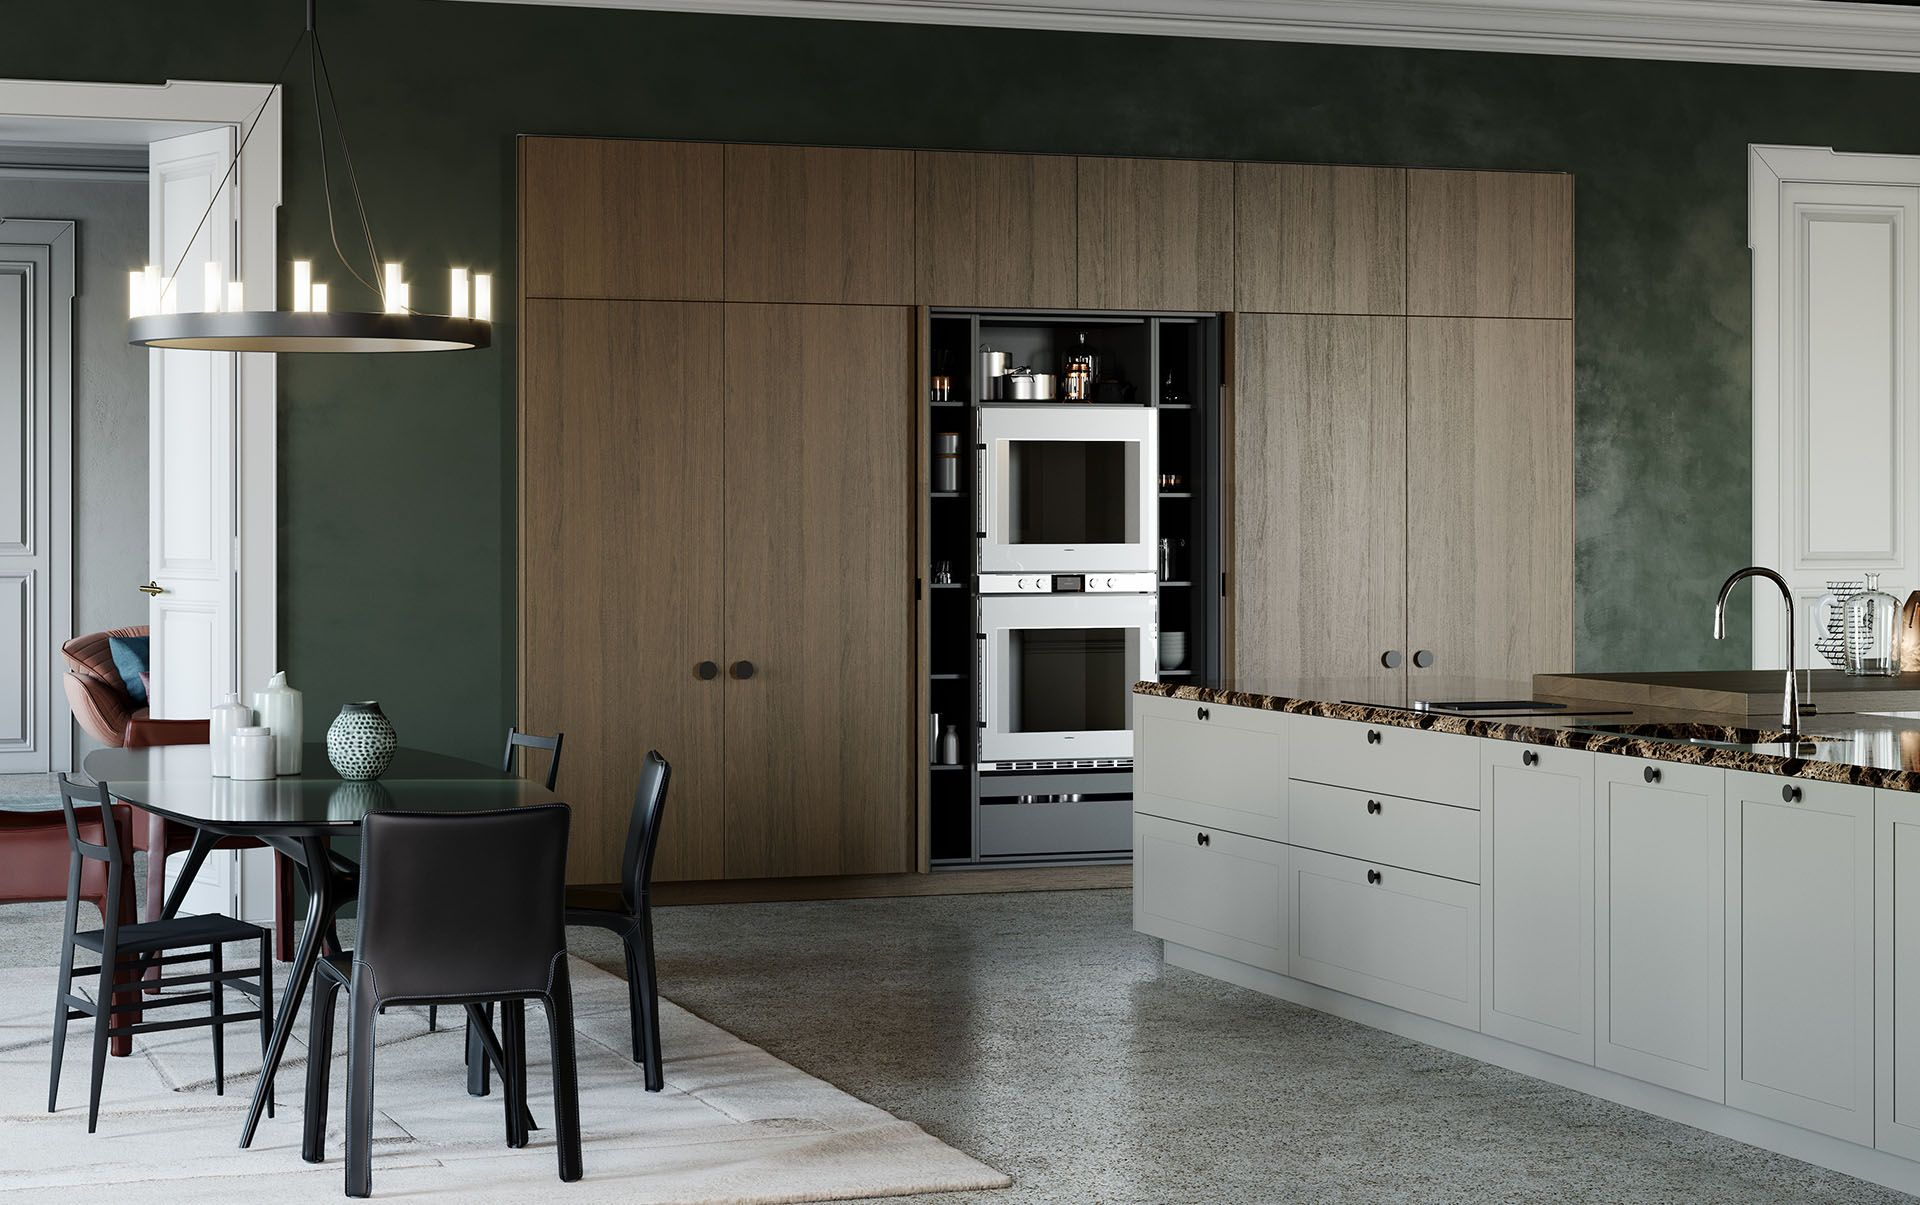 Modern Italian Custom Made Kitchen Cabinets Available In Brooklyn Ny Exclusive Home Interiors Luxury Kitchen Design Modern Italian Kitchen Cabinets